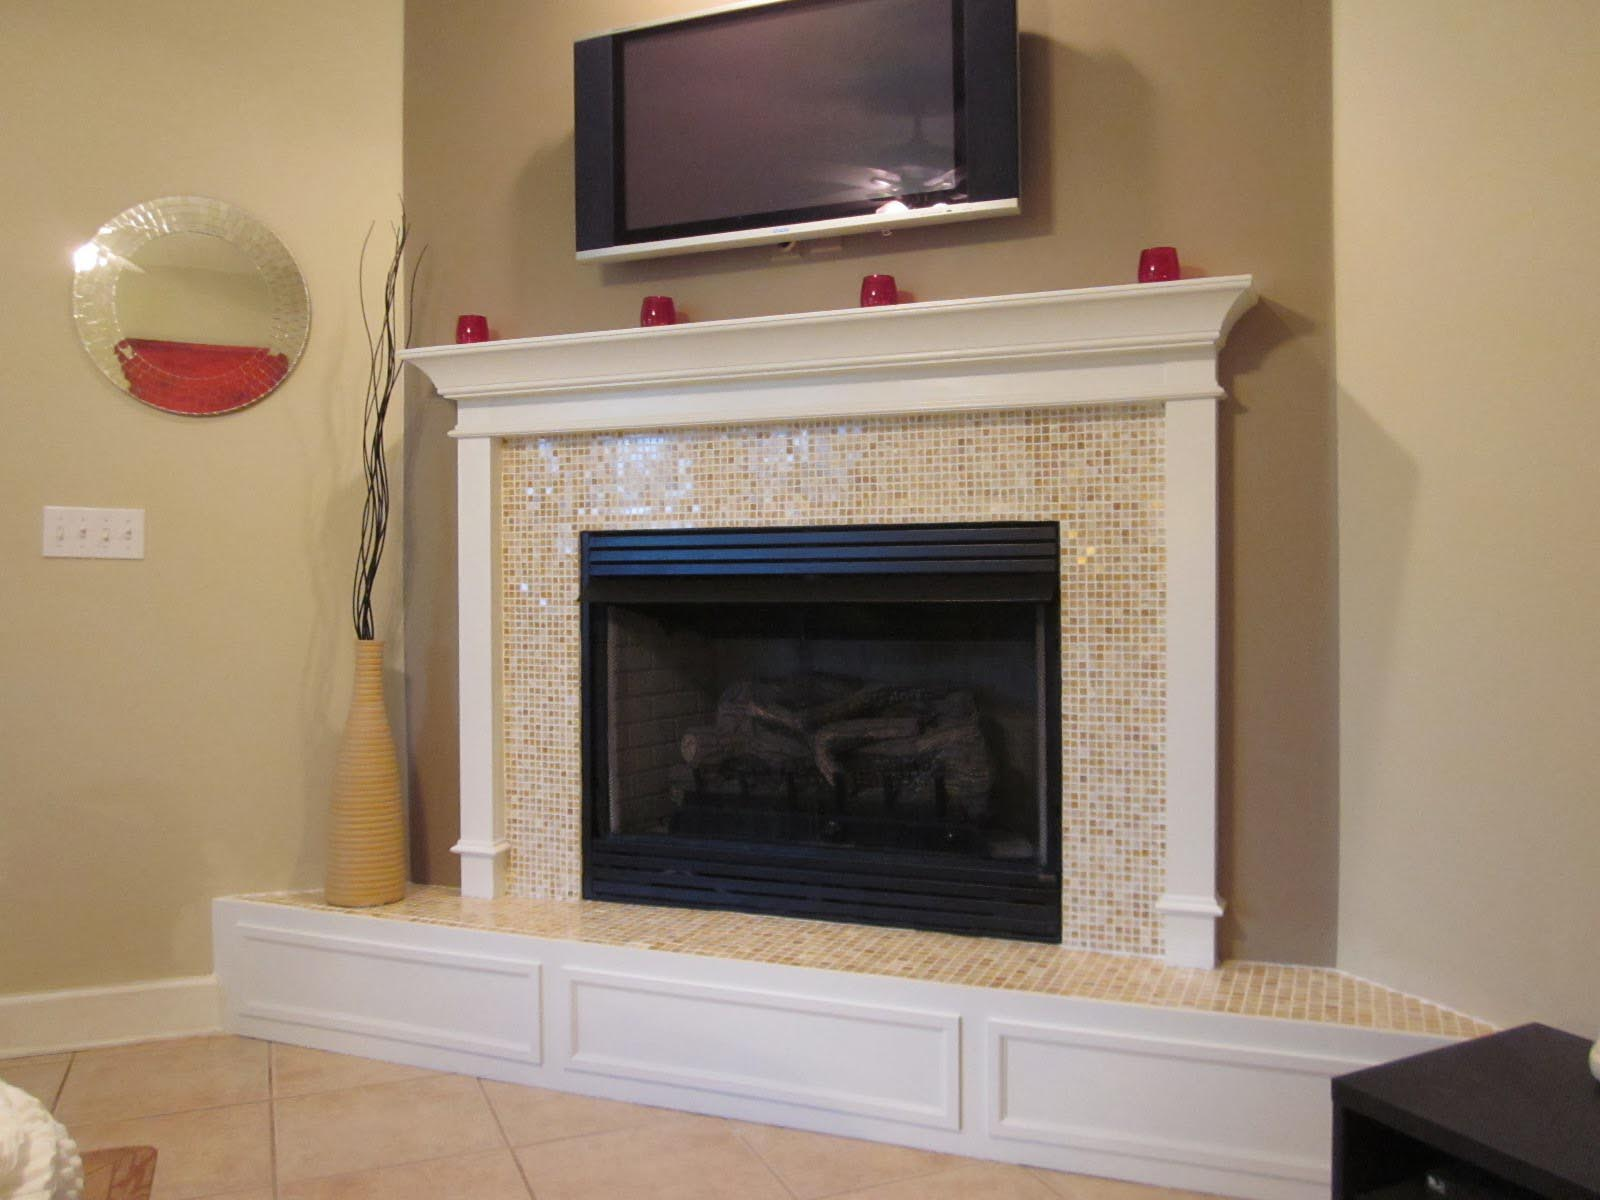 White Stone Fireplace Tips and Tricks : Stone Fireplace White Mantle. Stone fireplace white mantle. fireplace ideas